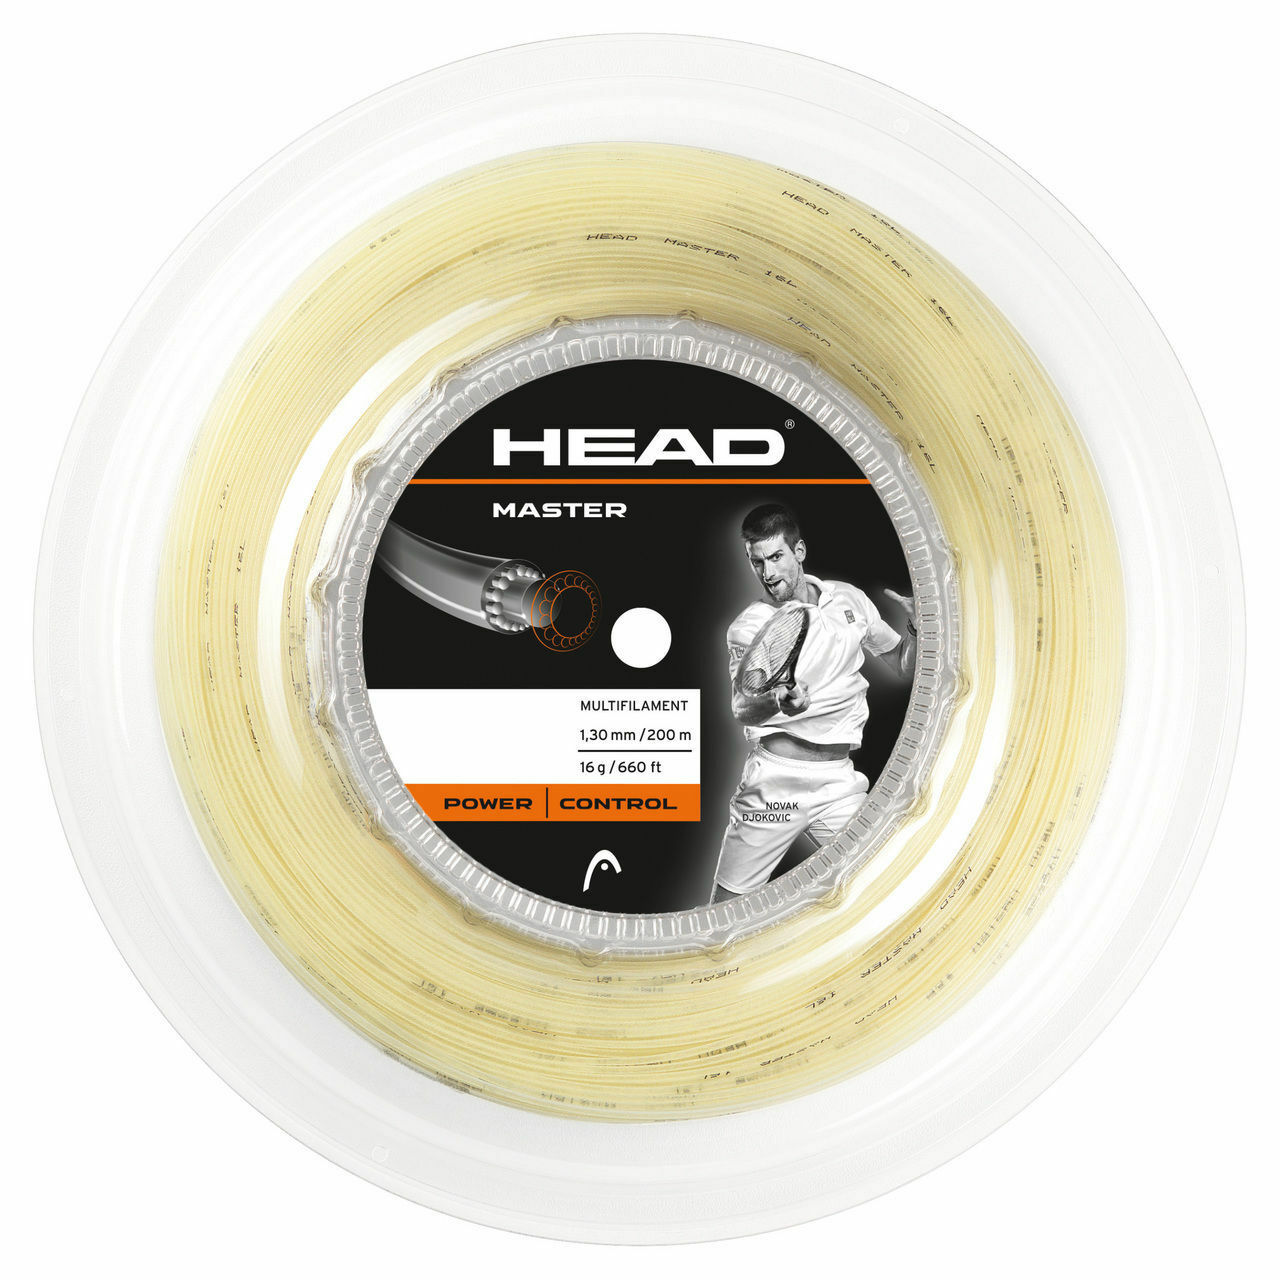 HEAD MASTER 15 / 1.40 mm Tennis Tennis Tennis stringa 200m Reel-naturale ba206d